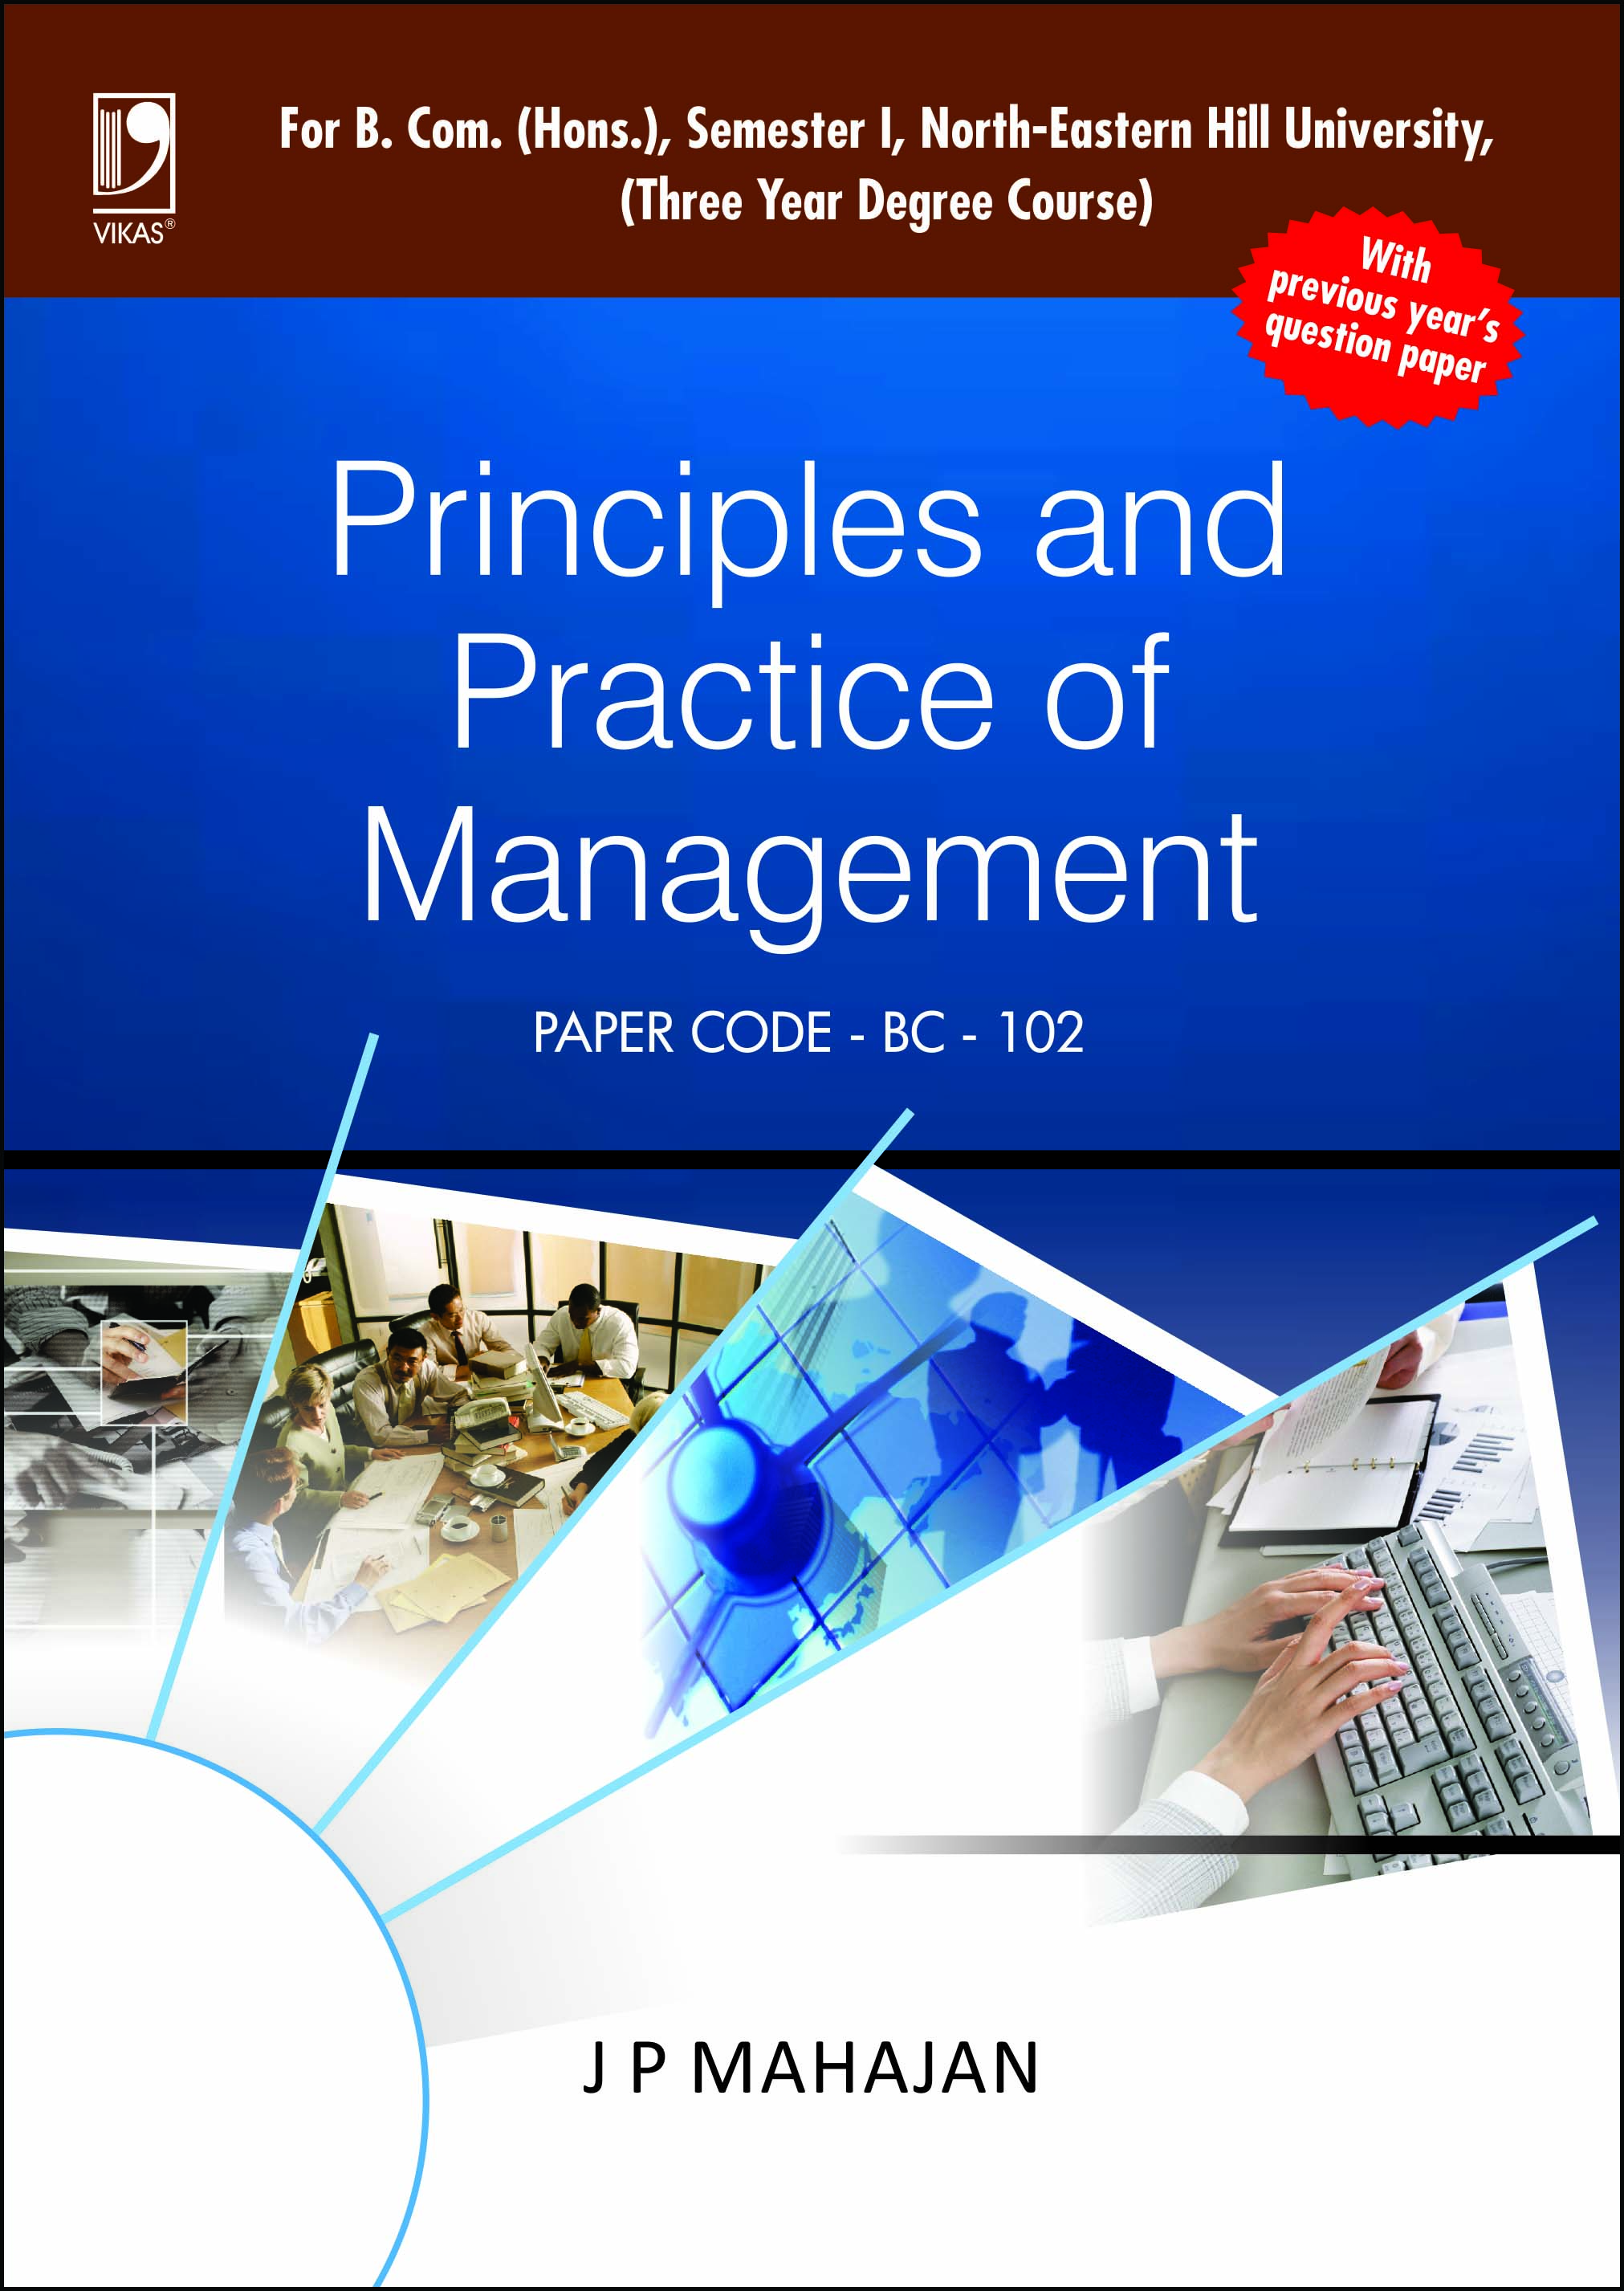 PRINCIPLES AND PRACTICE OF MANAGEMENT: (FOR NORTH-EASTERN HILL UNIVERSITY)